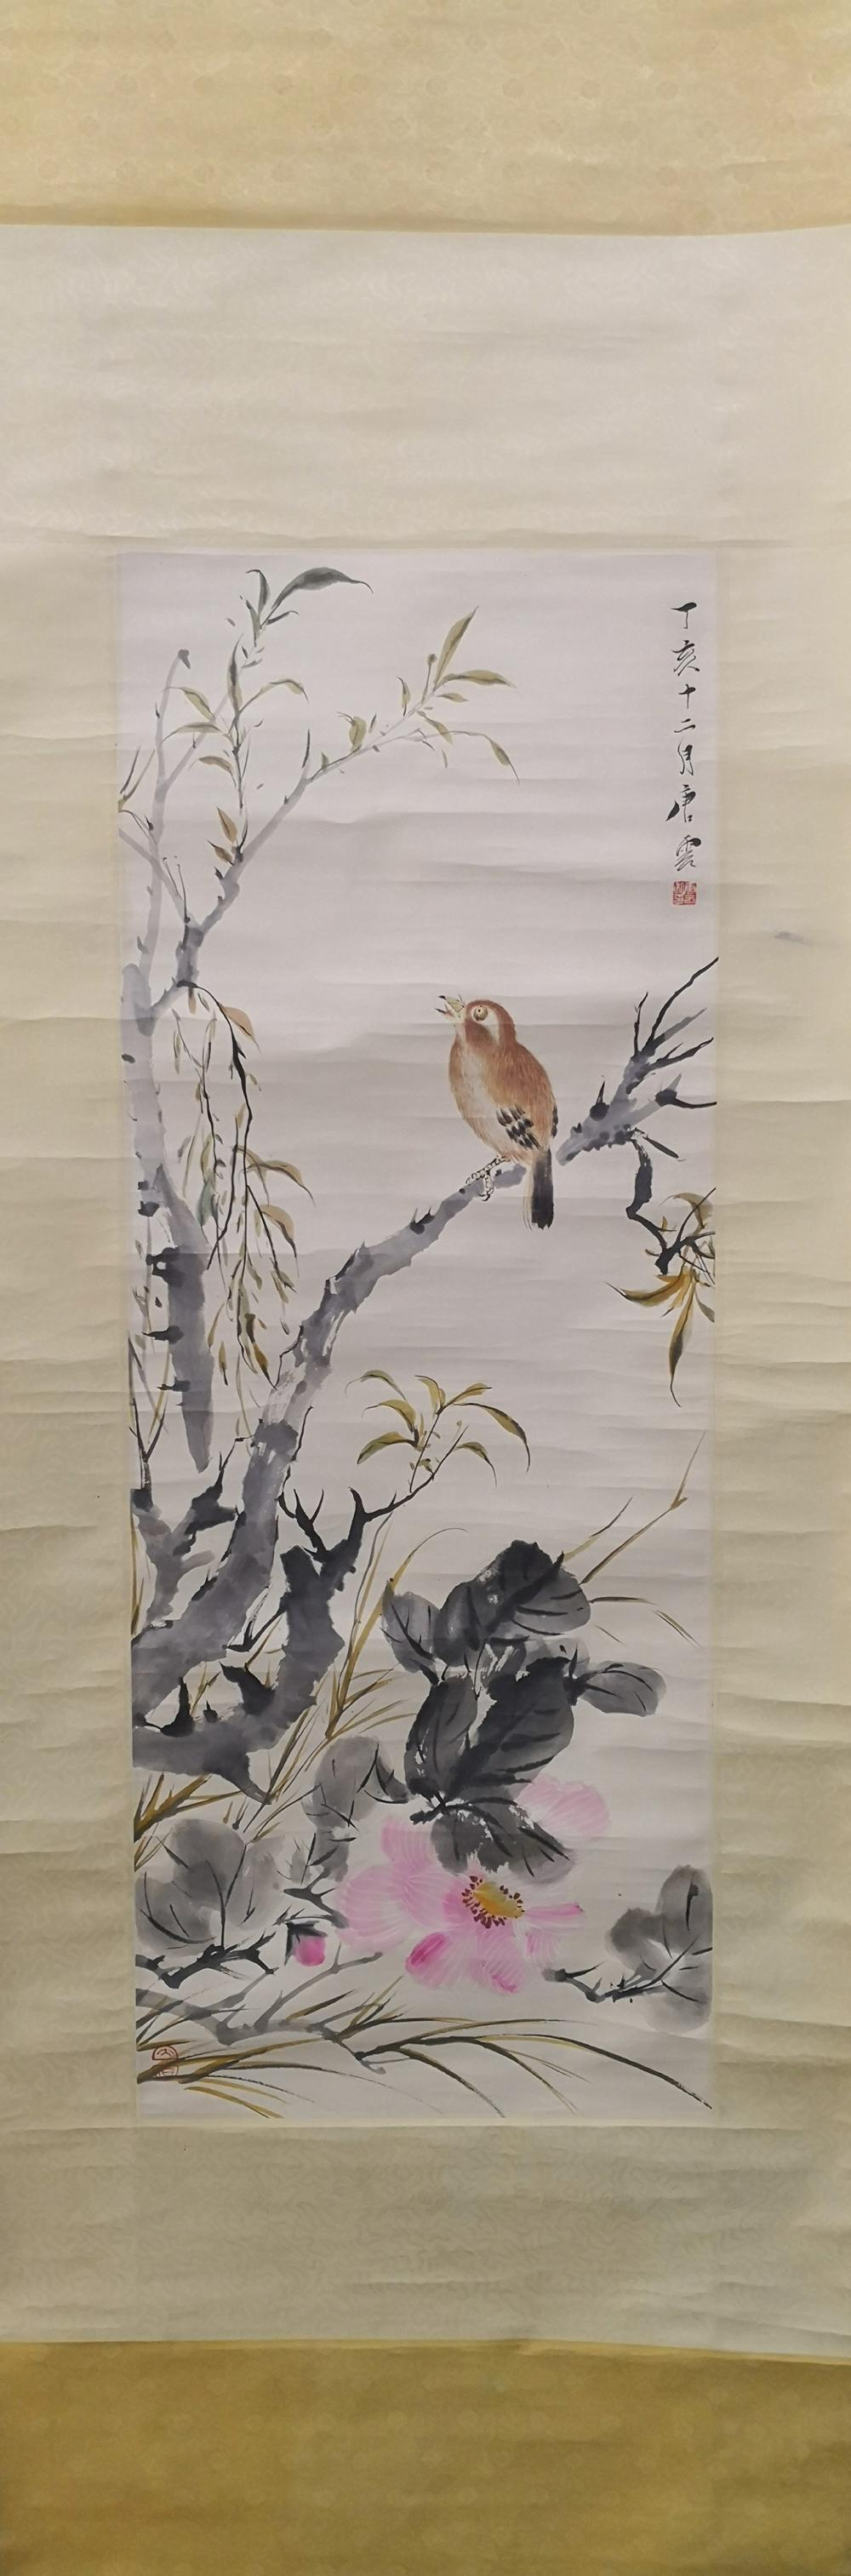 A CHINESE PAINTING BY TANG YUN